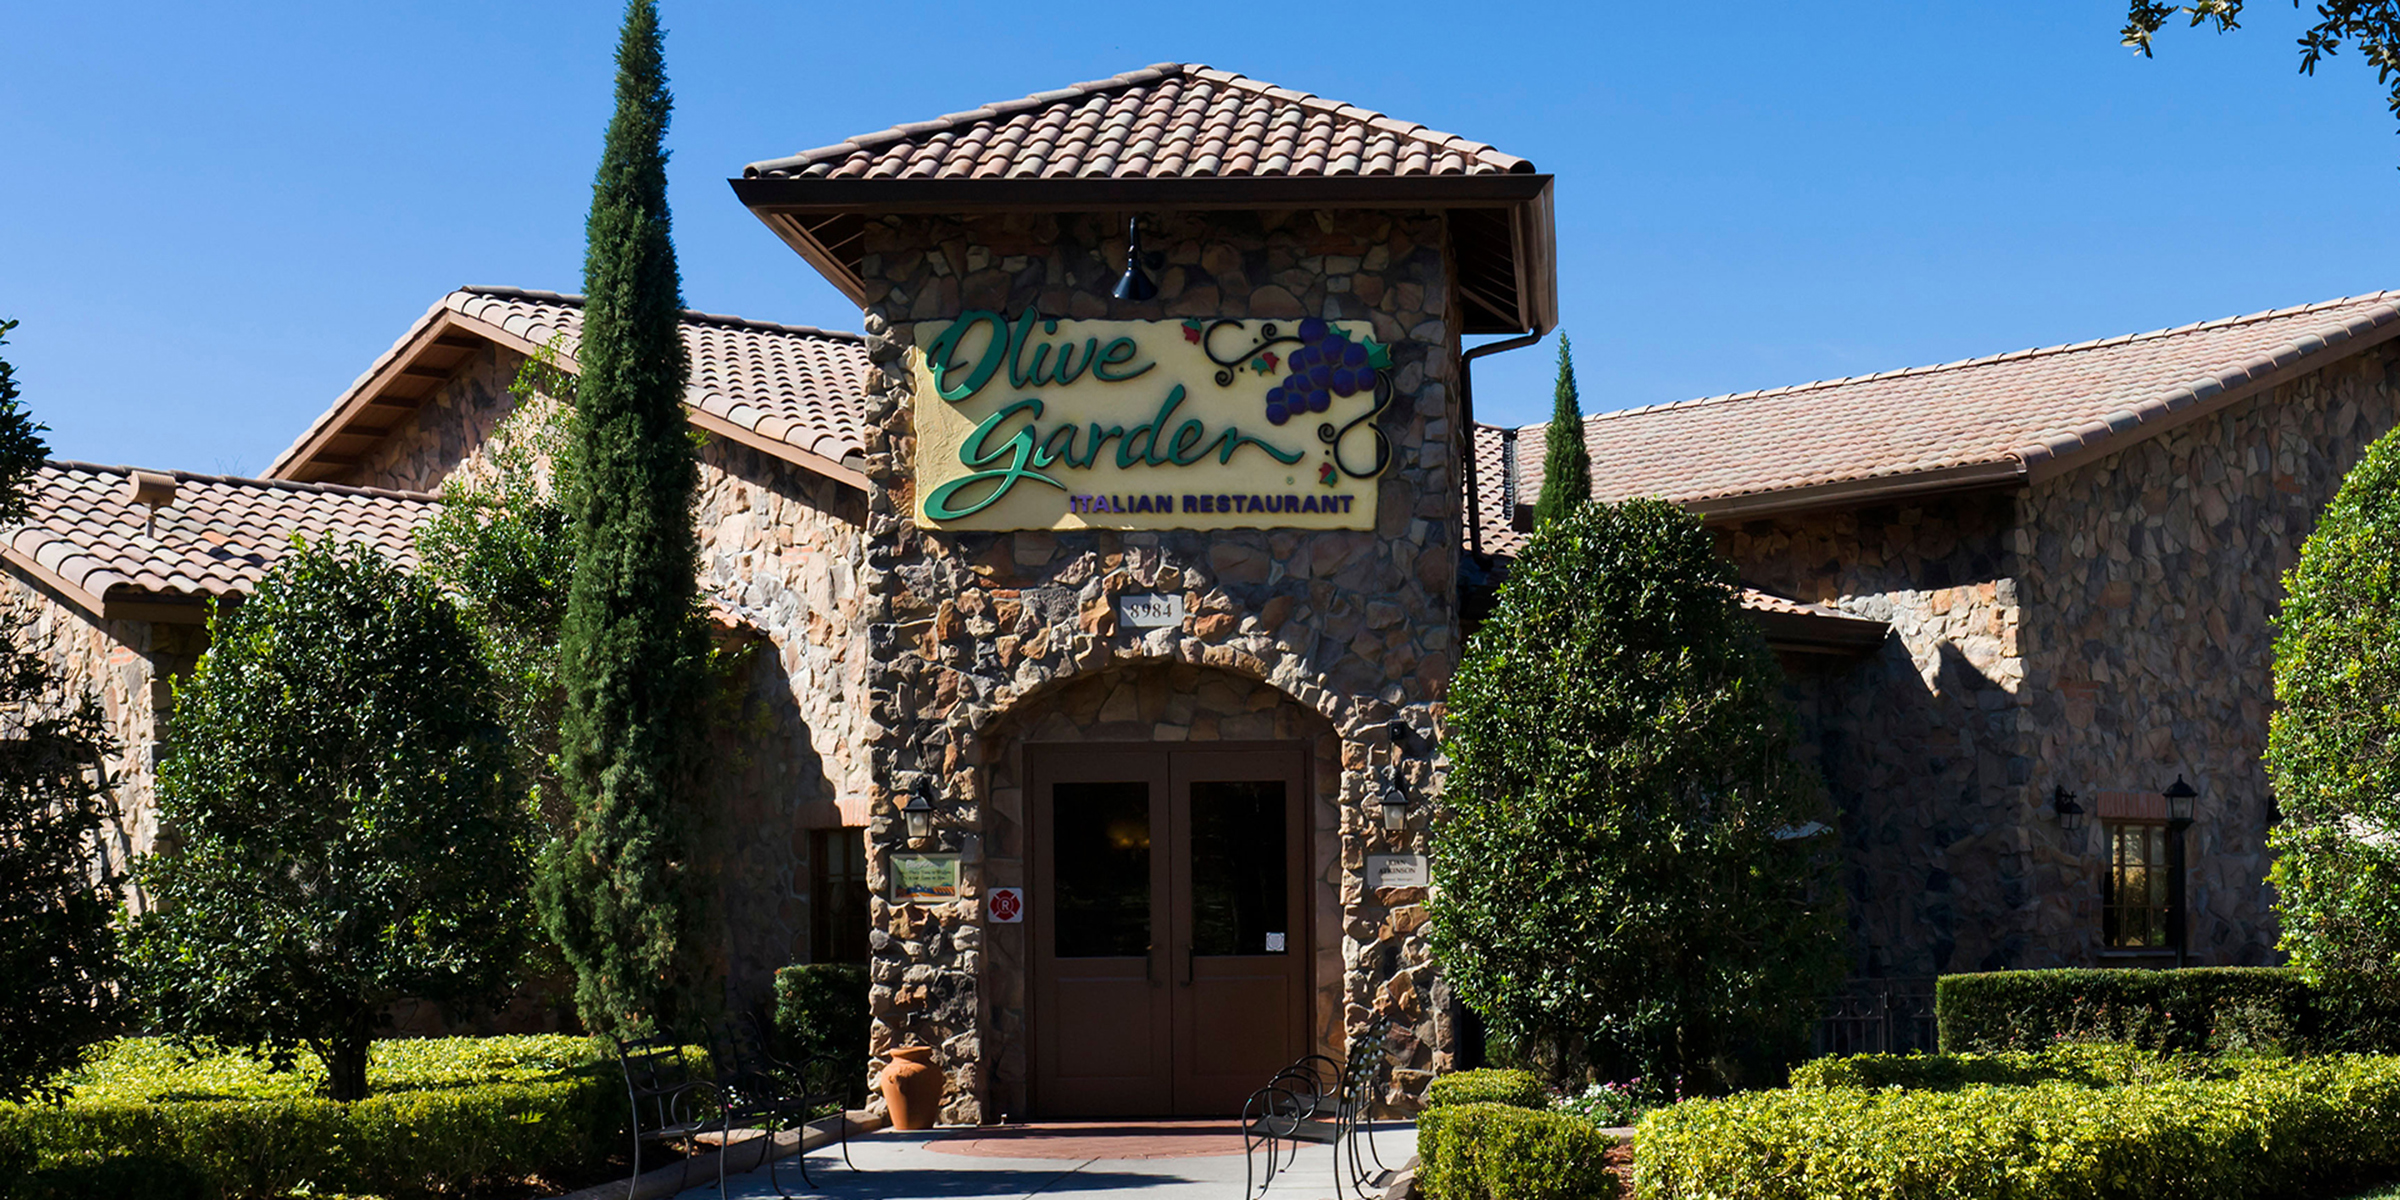 Olive Garden Manager Fired After Complying With Racist Request